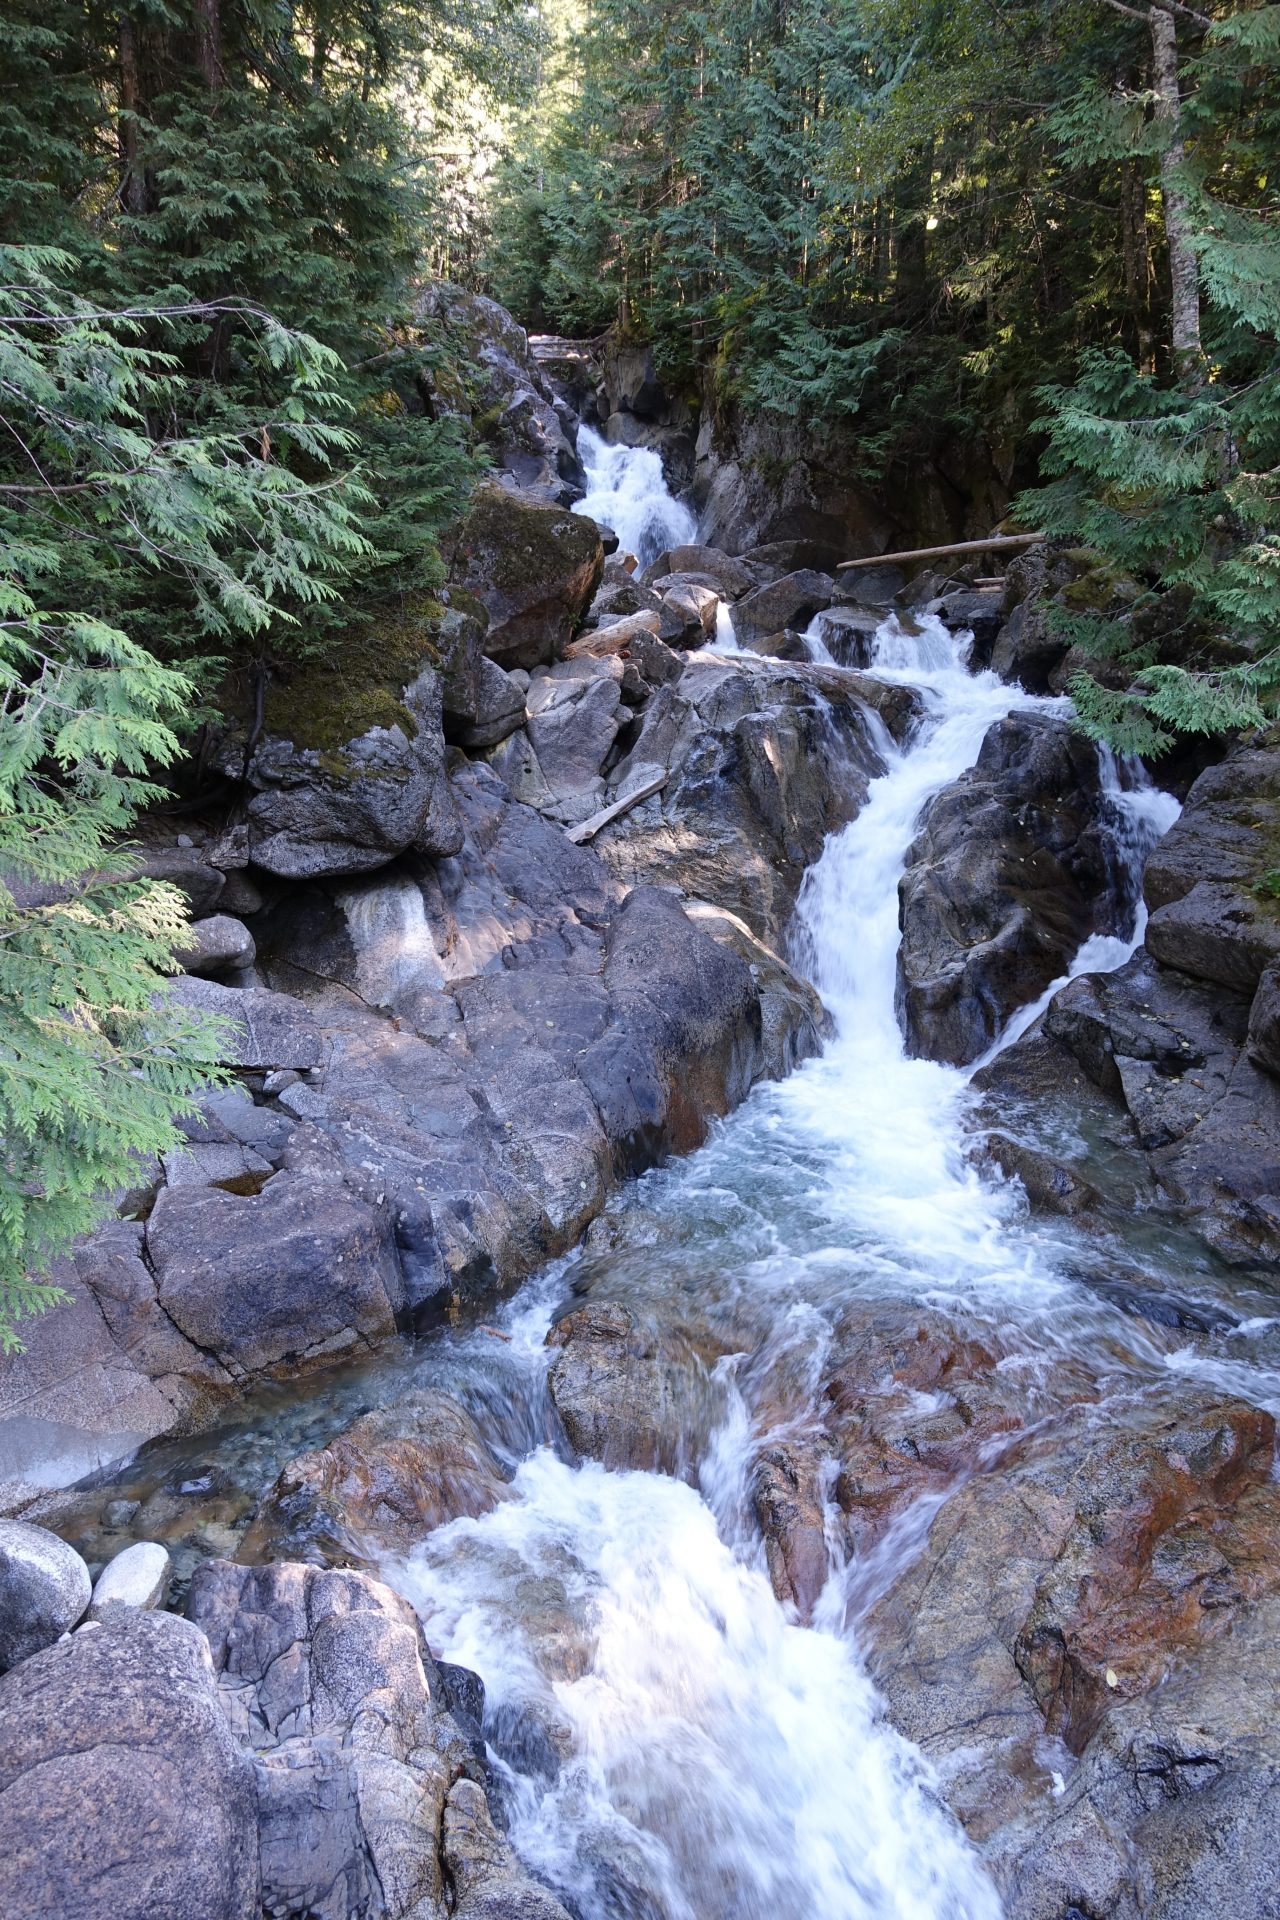 Deception Falls waterfall - one of Washington's Highway 2 roadside attractions